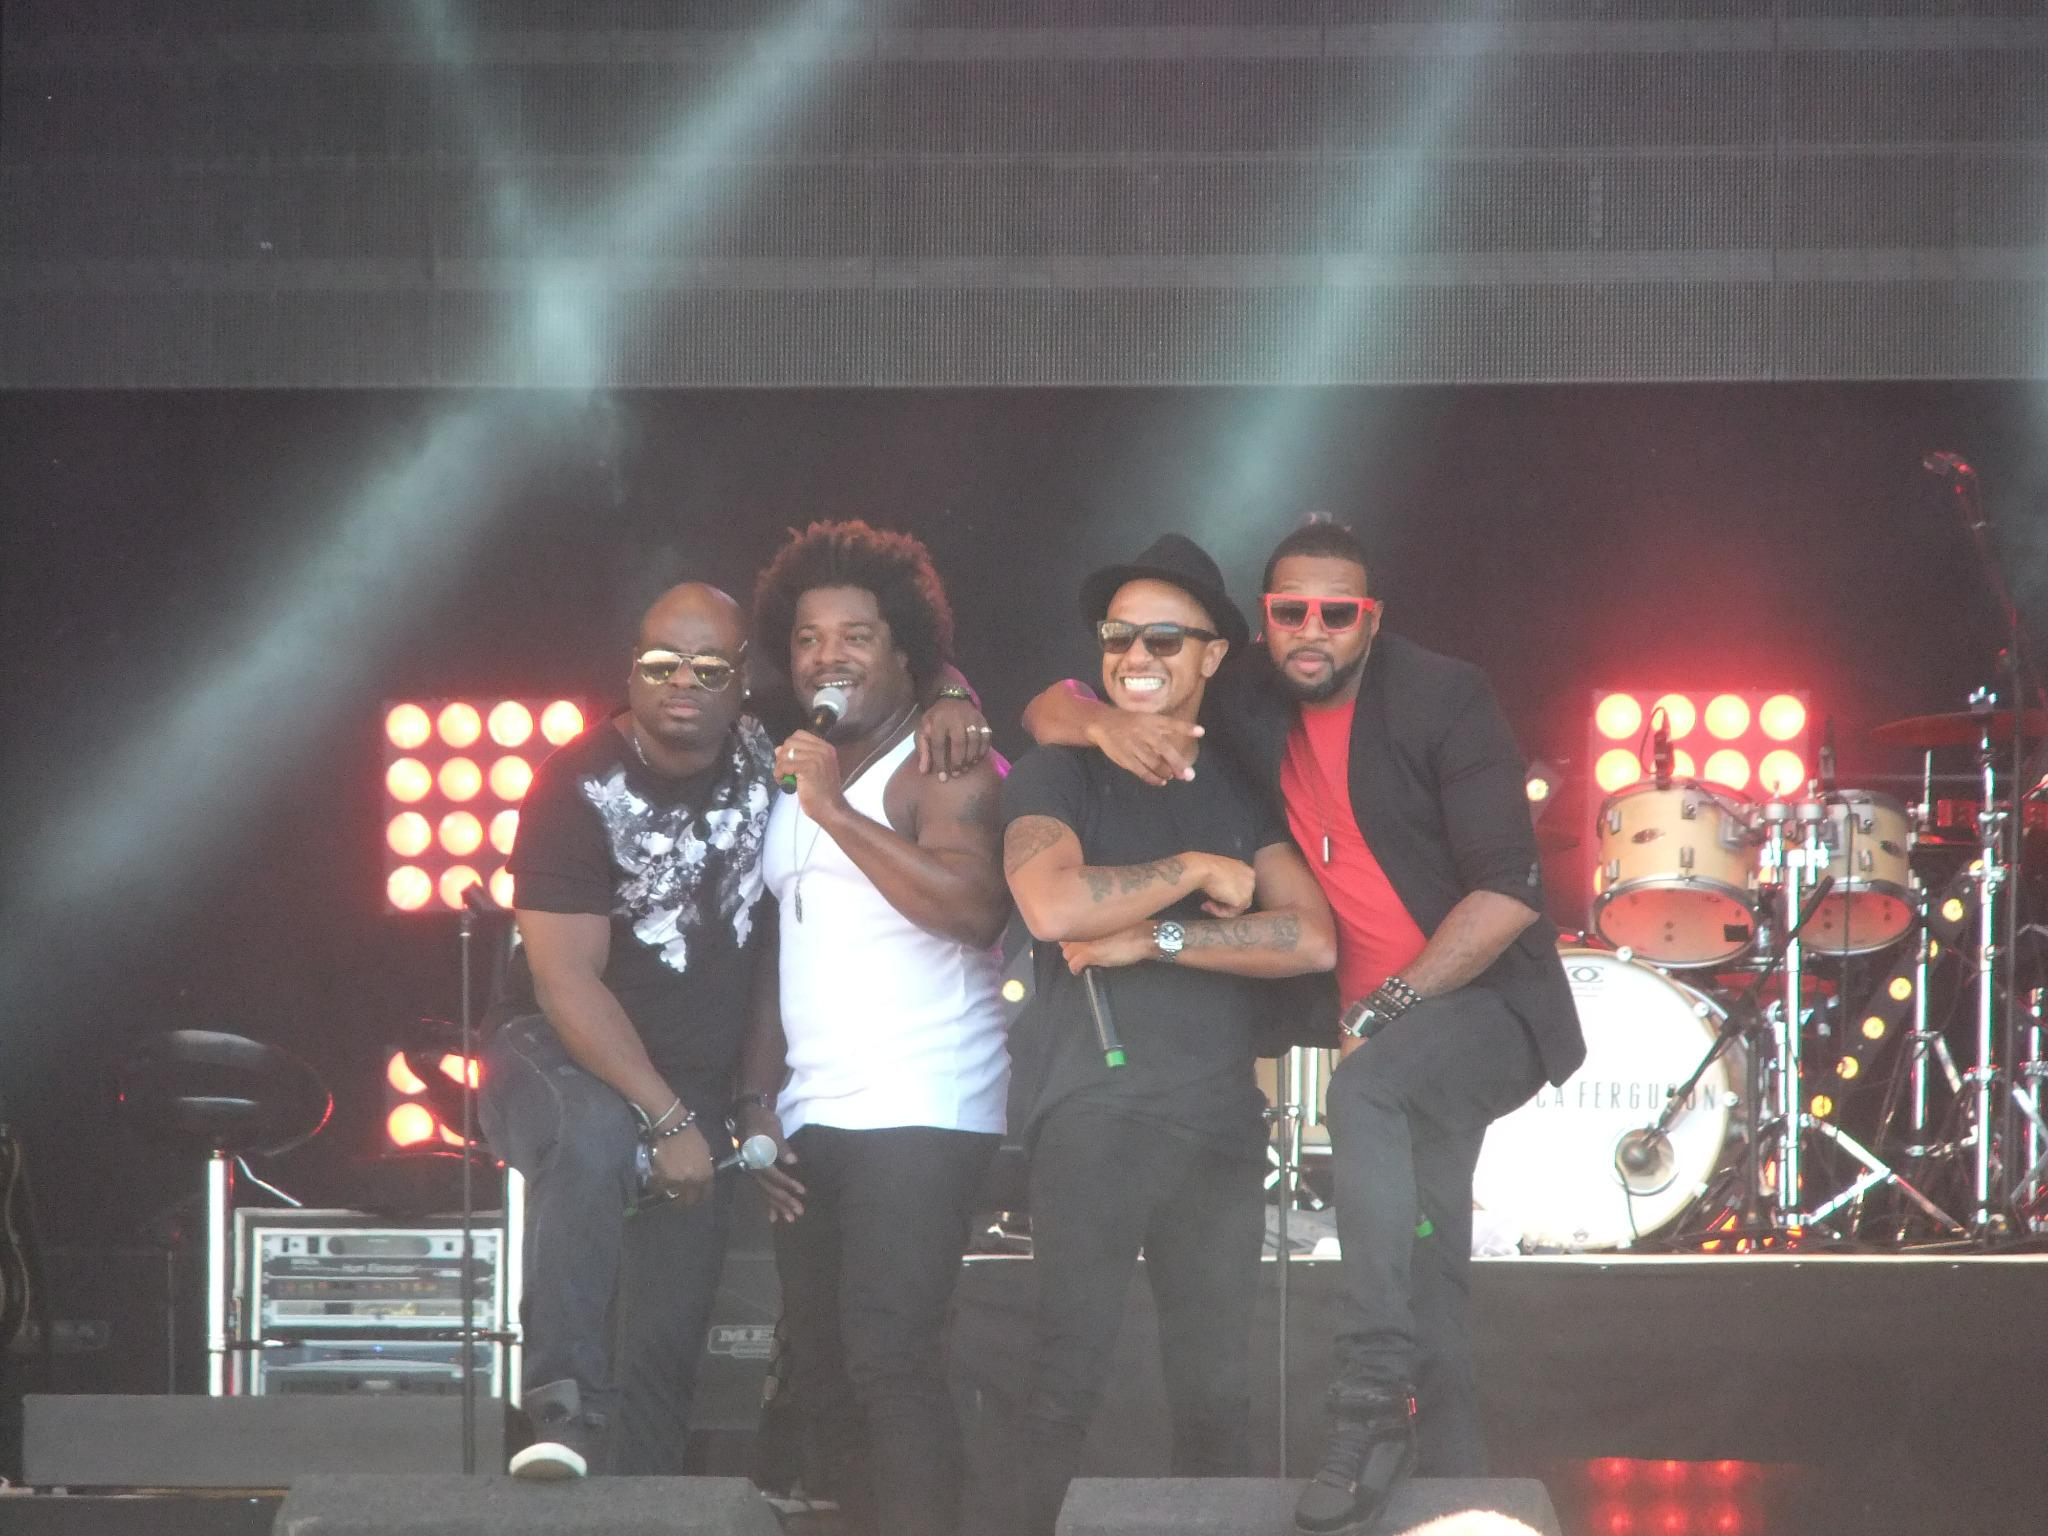 RT @Catherine_1983x: @OfficialDamage Love this pic i took lastnight! You guys rocked !!!! #GhettoRomance http://t.co/hqJn690wl1